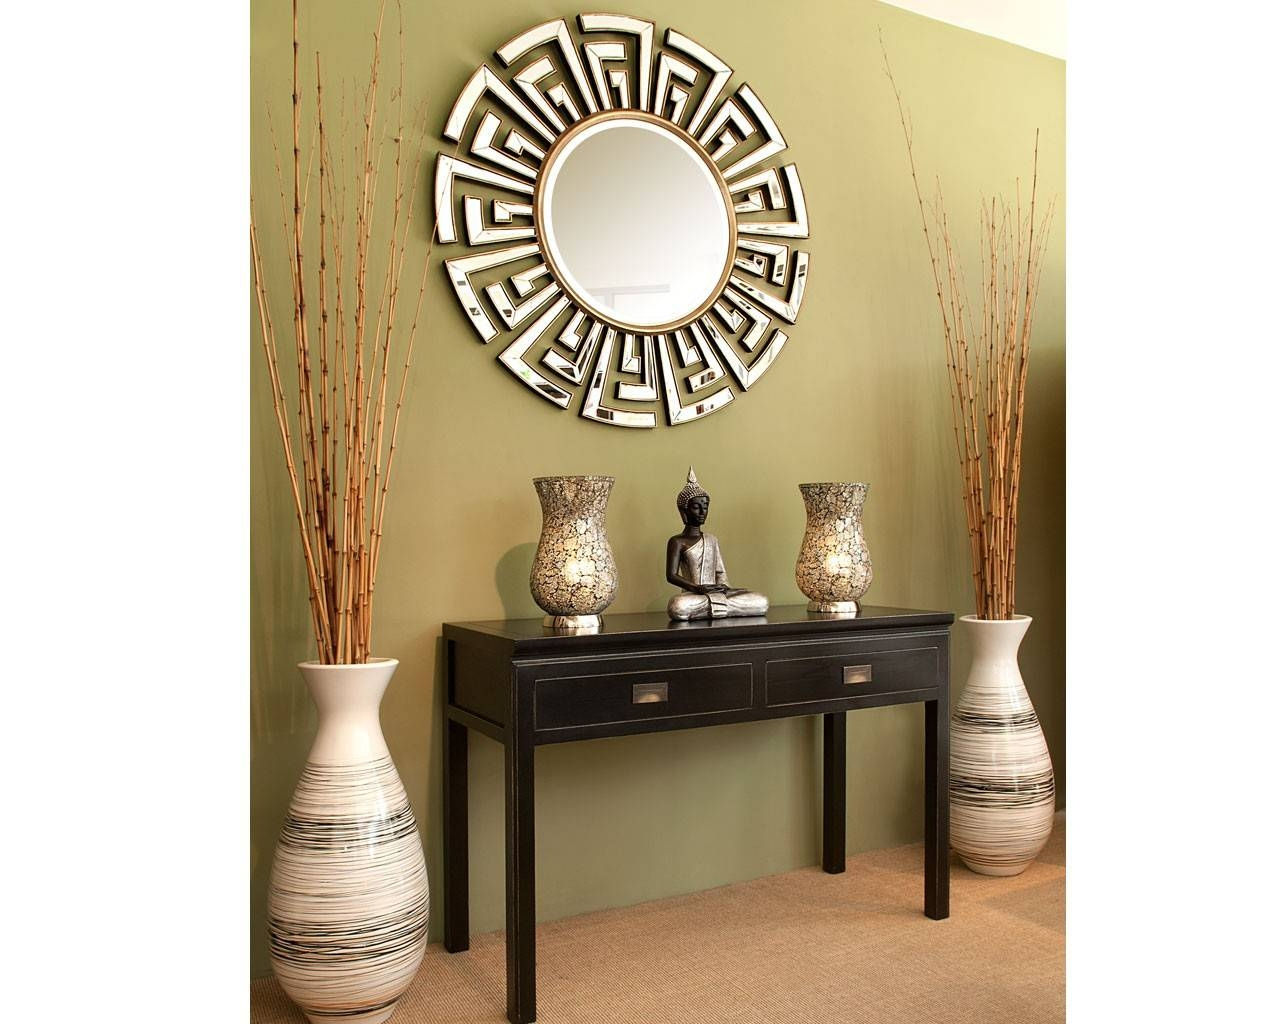 Contemporary Art Deco Round Mirror | Statement Circular Mirrors for Art Deco Large Mirrors (Image 9 of 15)